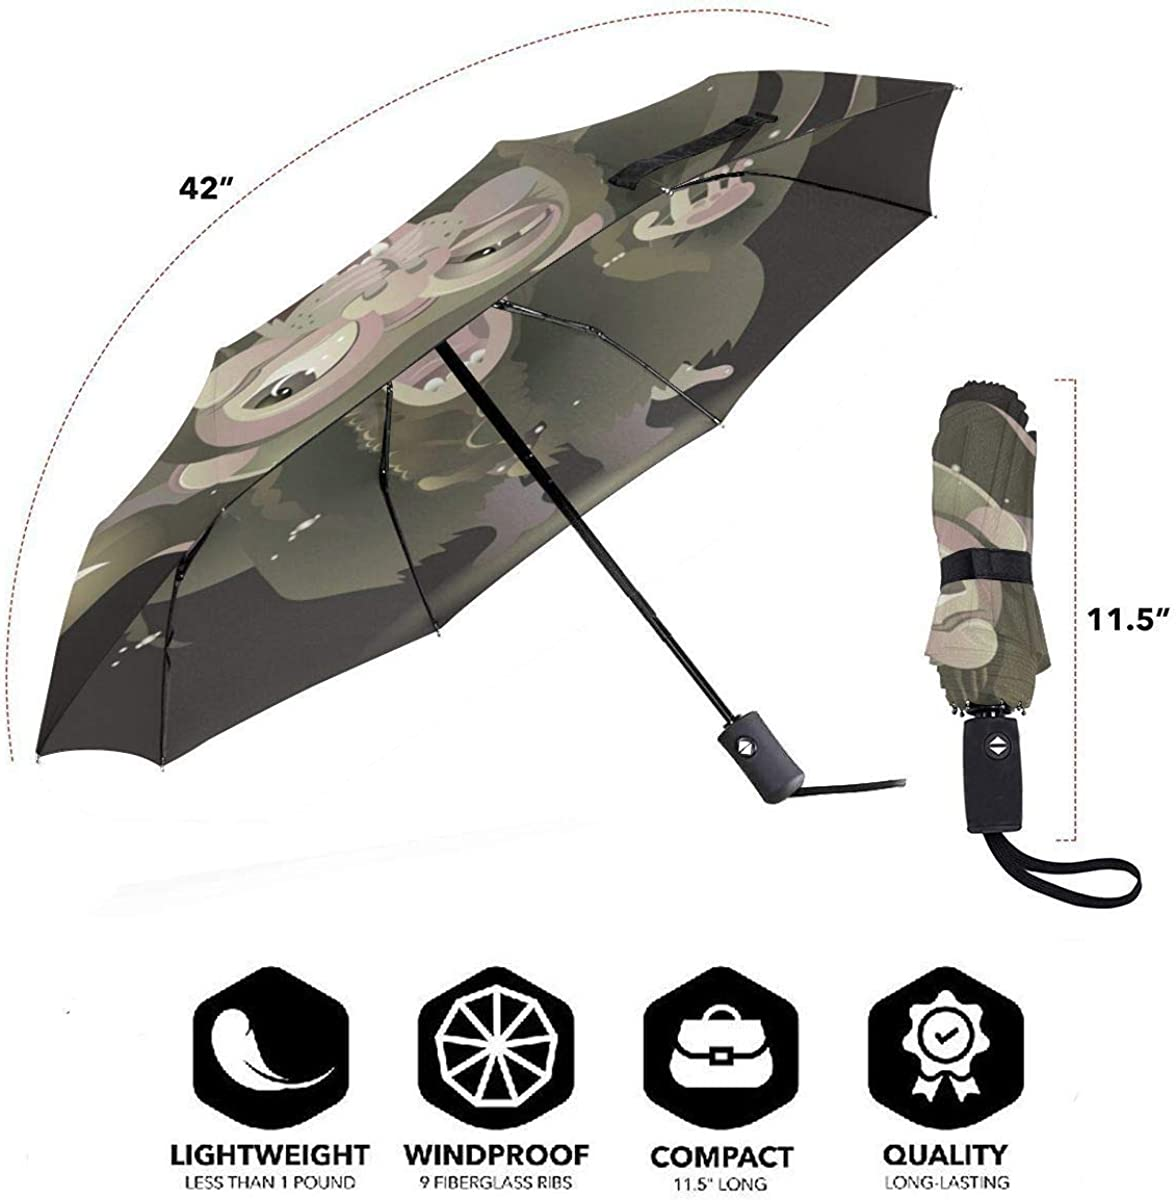 Stars In Night Sky Compact Travel Umbrella Windproof Reinforced Canopy 8 Ribs Umbrella Auto Open And Close Button Personalized